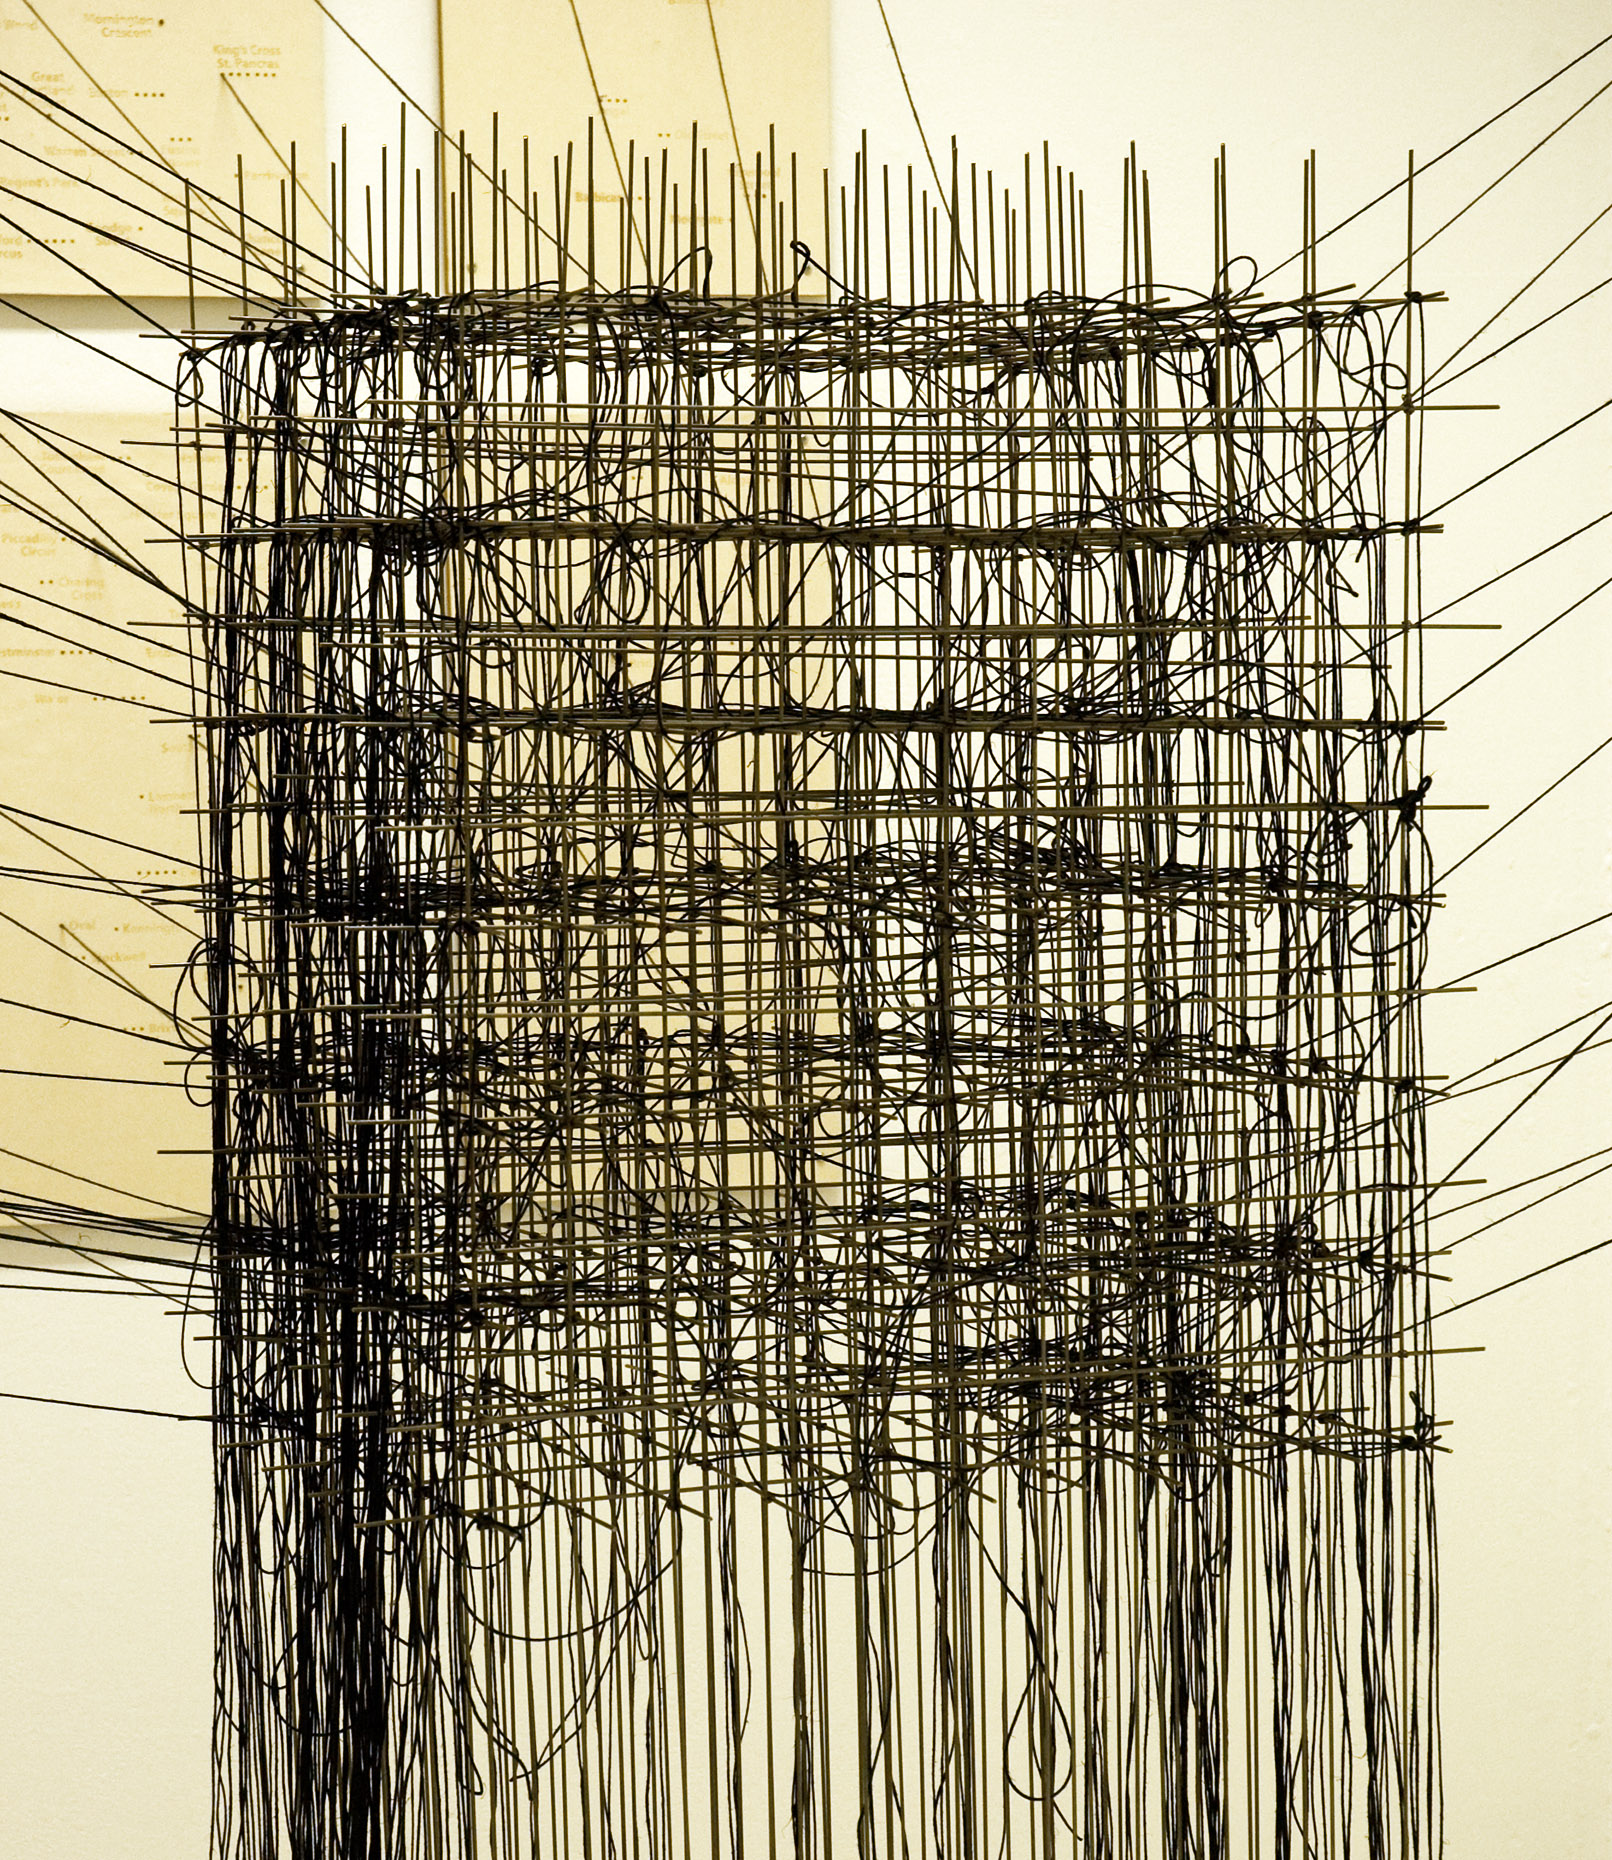 String And Wire Woven Architectural Structure